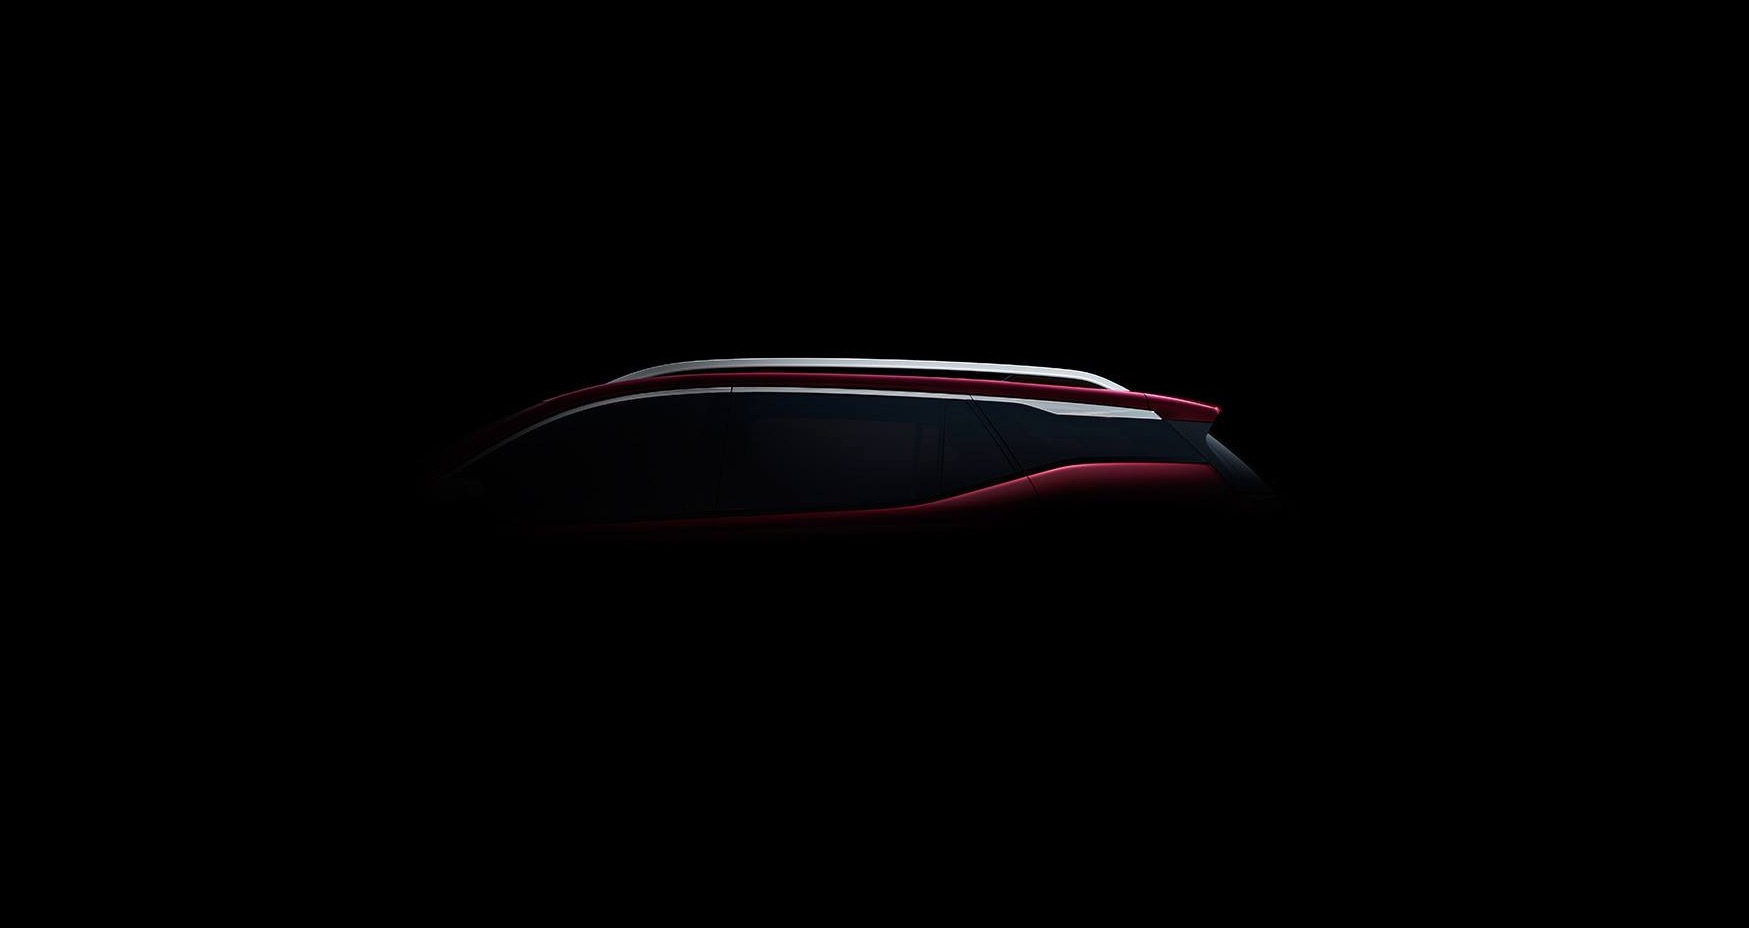 2018 GMC Terrain Teased Looks Better than the 2018 Chevrolet